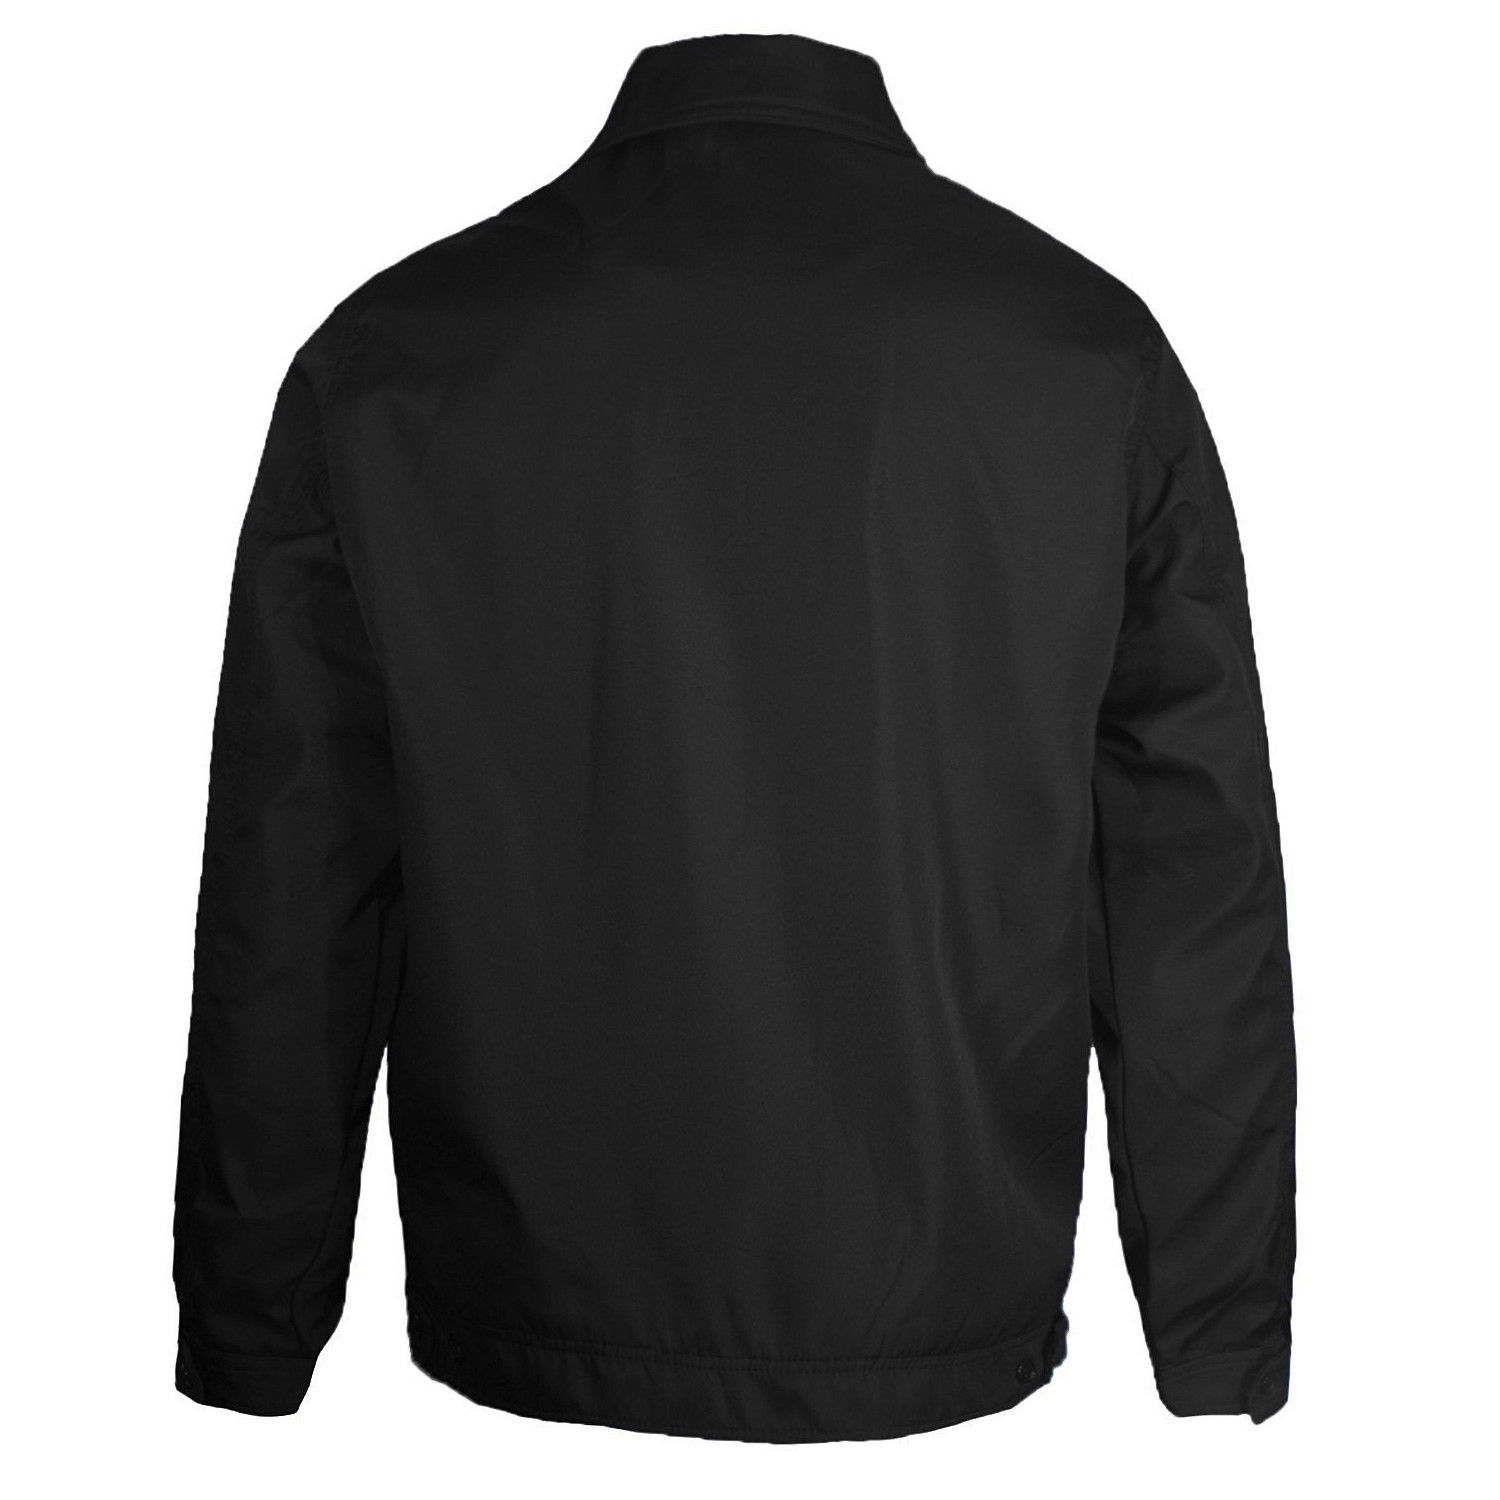 Men-039-s-Microfiber-Golf-Sport-Water-Resistant-Zip-Up-Windbreaker-Jacket-BENNY thumbnail 7